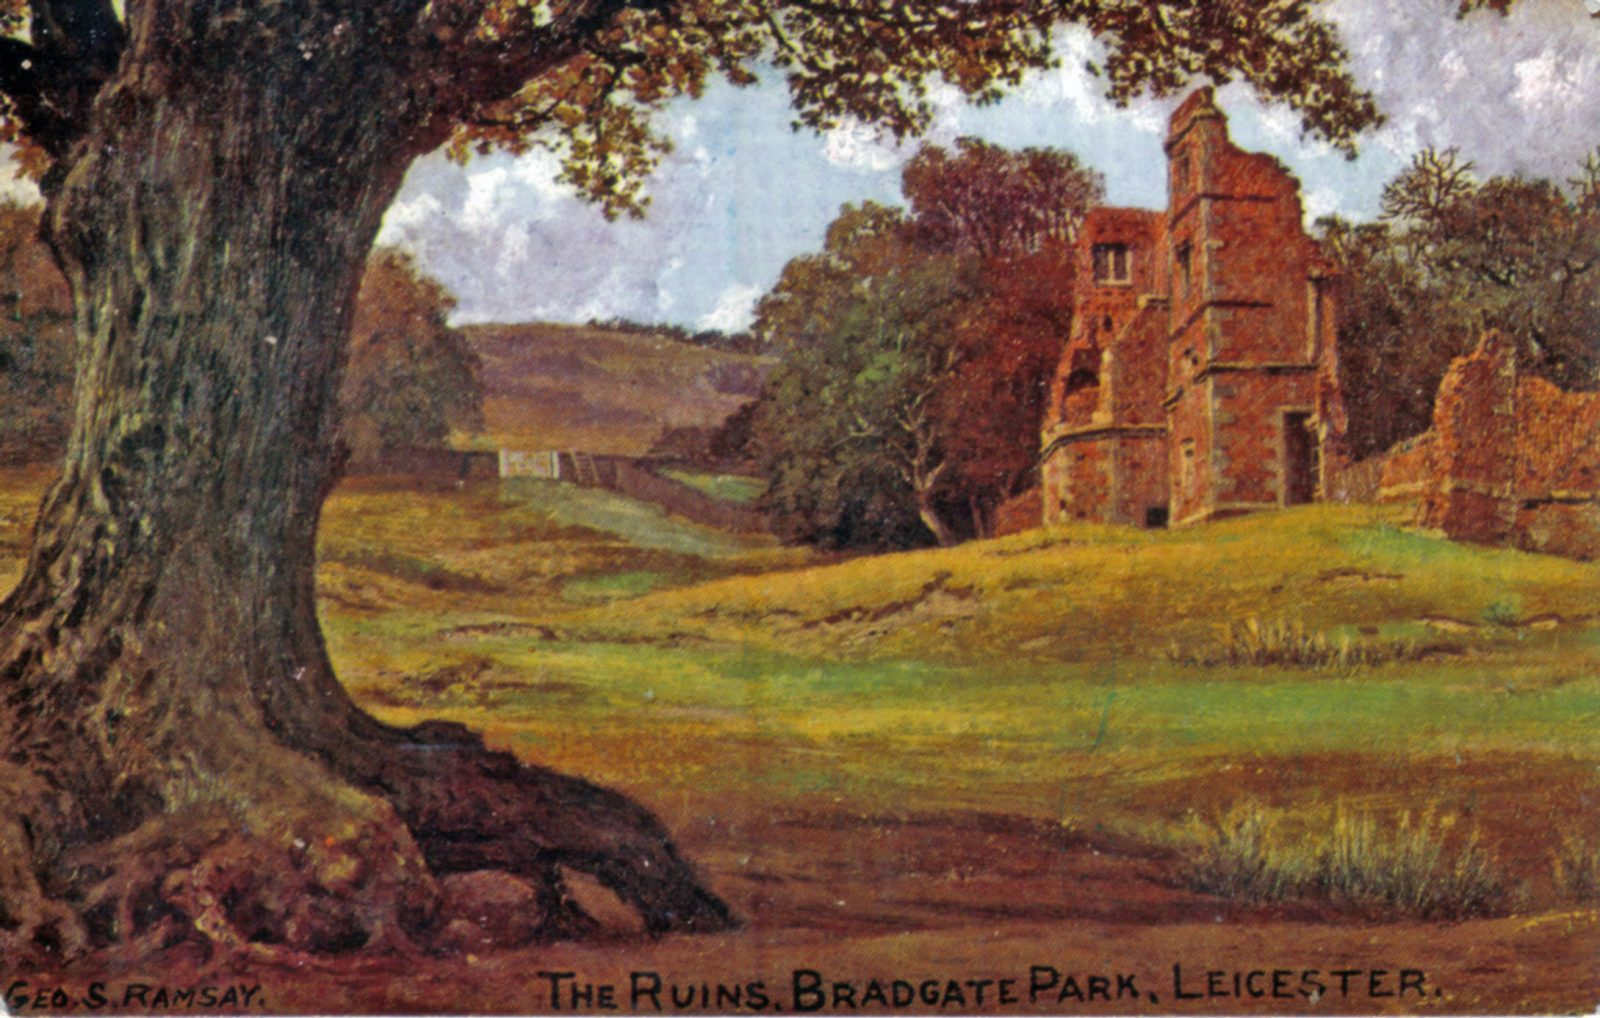 Bradgate Park, Leicester. Undated: Painting of the ruins in Bradgate Park. Taken from an oil painting by Geo. S. Ramsey. (File:1002)